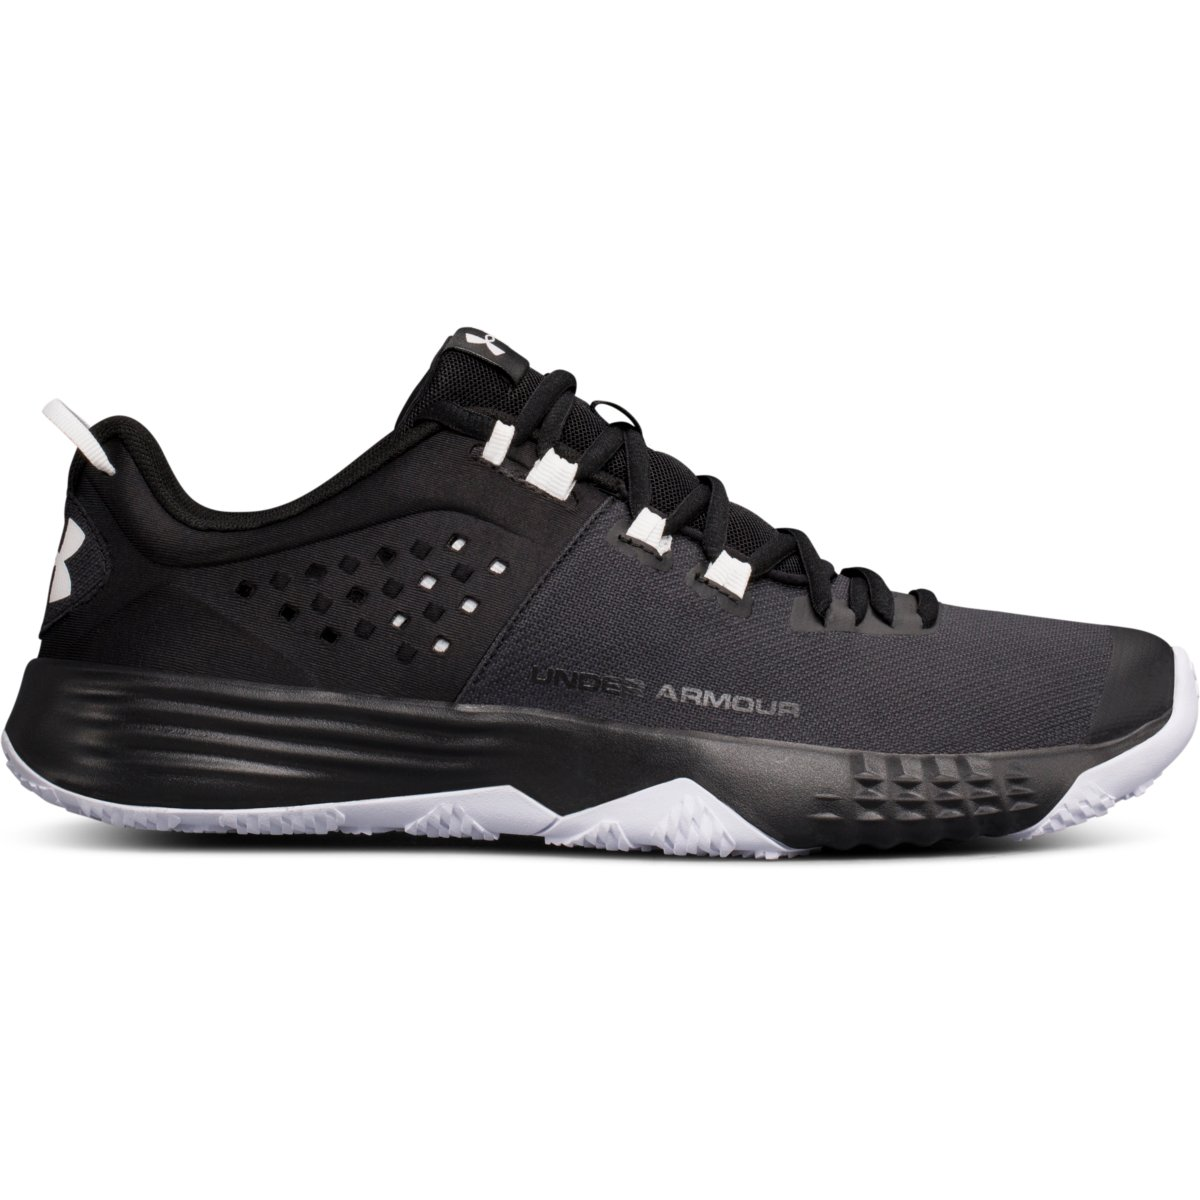 brand new 1167f 893a2 ... Men s Under Under Under Armour BAM Training Shoe Black White 127990 ...